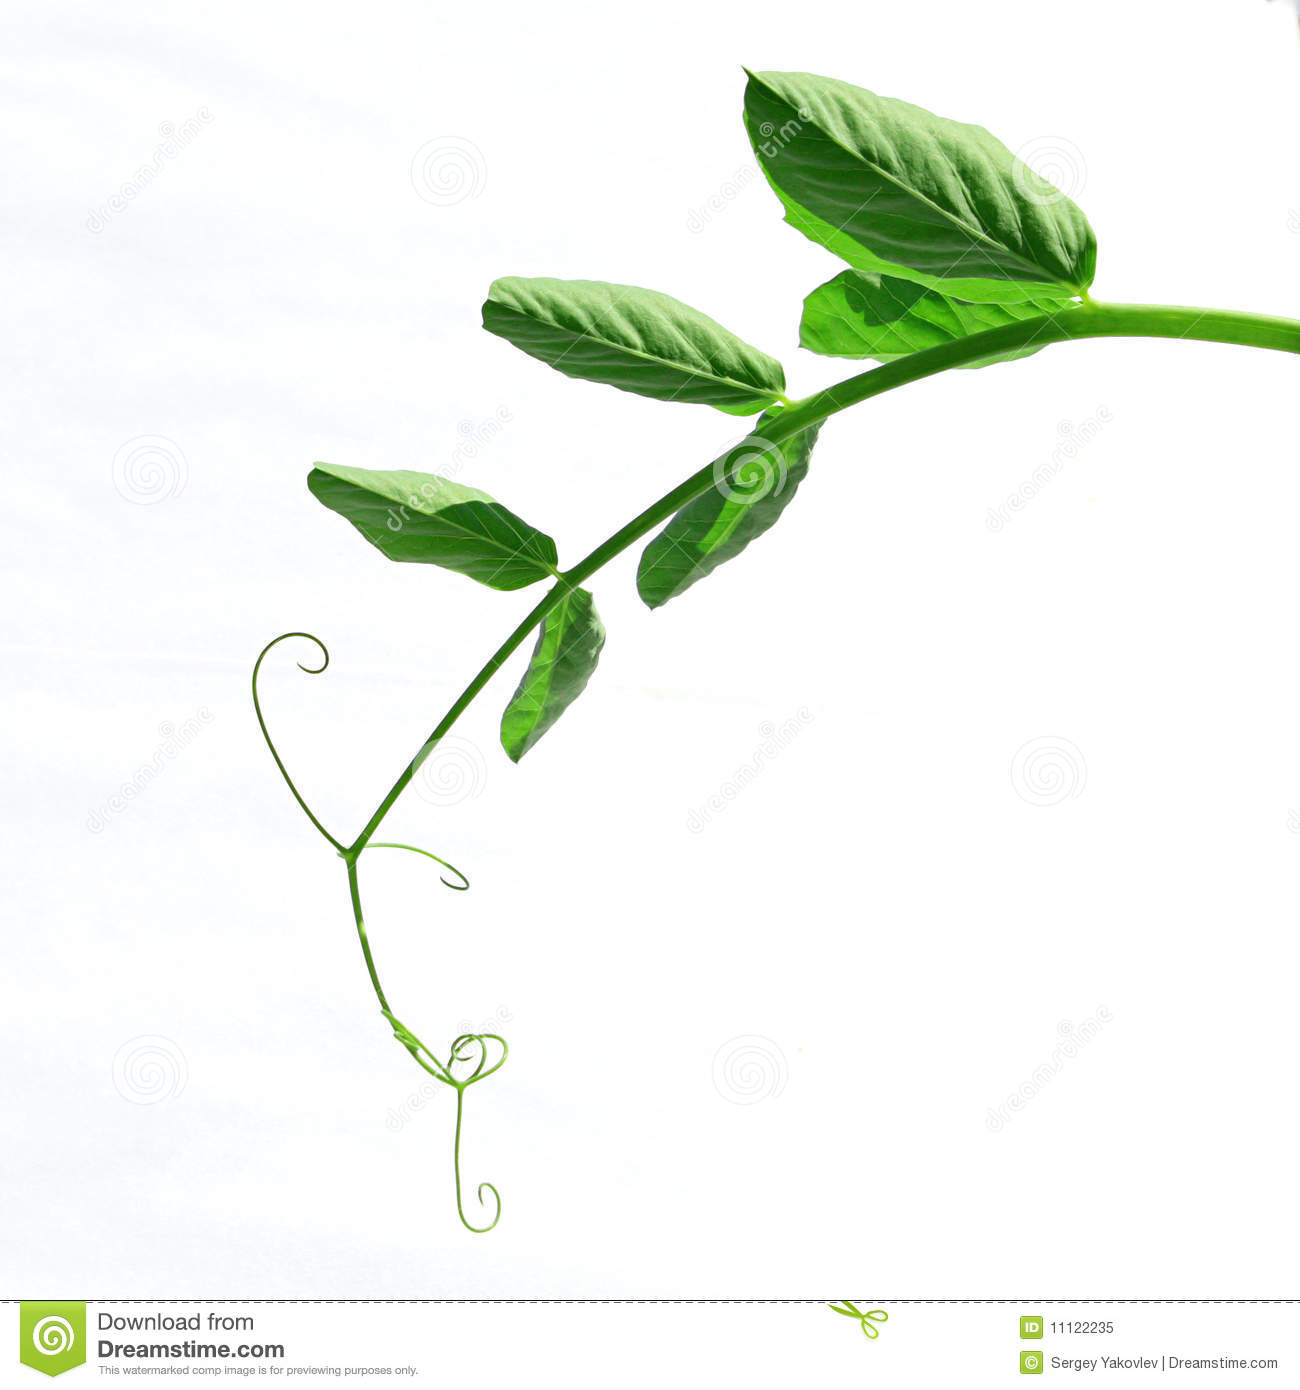 stalk of the plant royalty free stock photo image 11122235